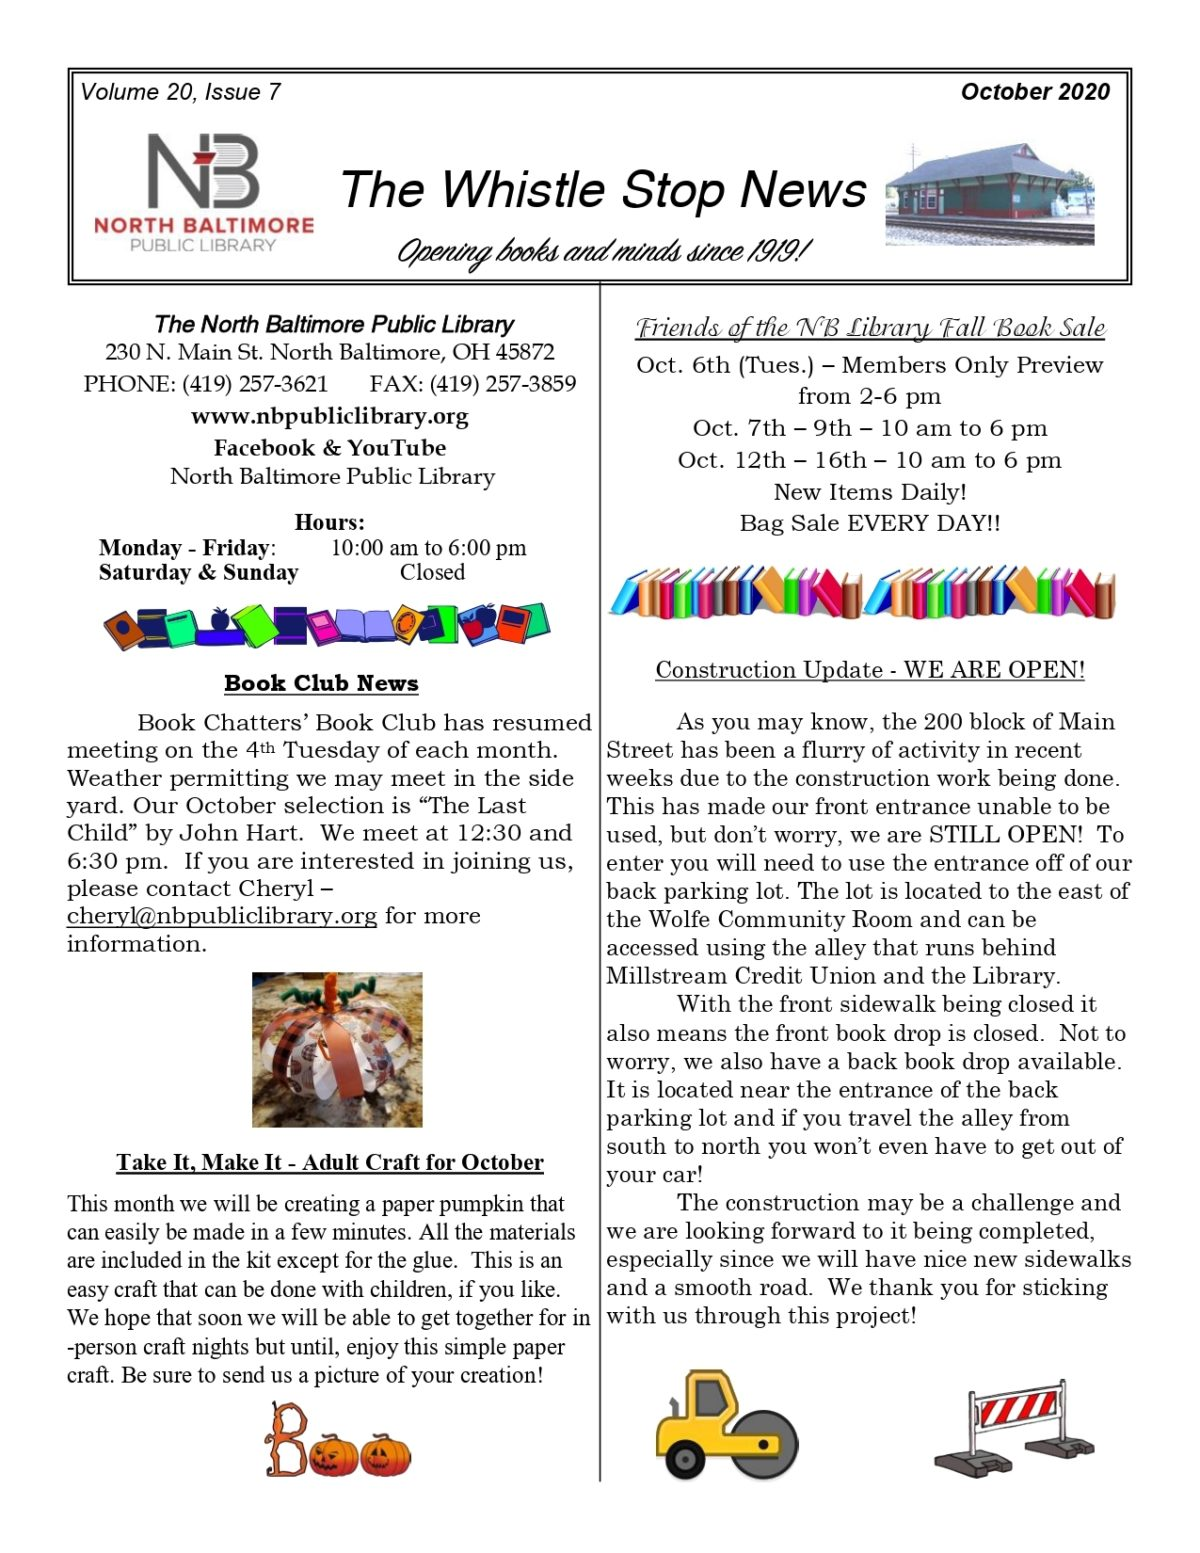 News from the NB Public Library